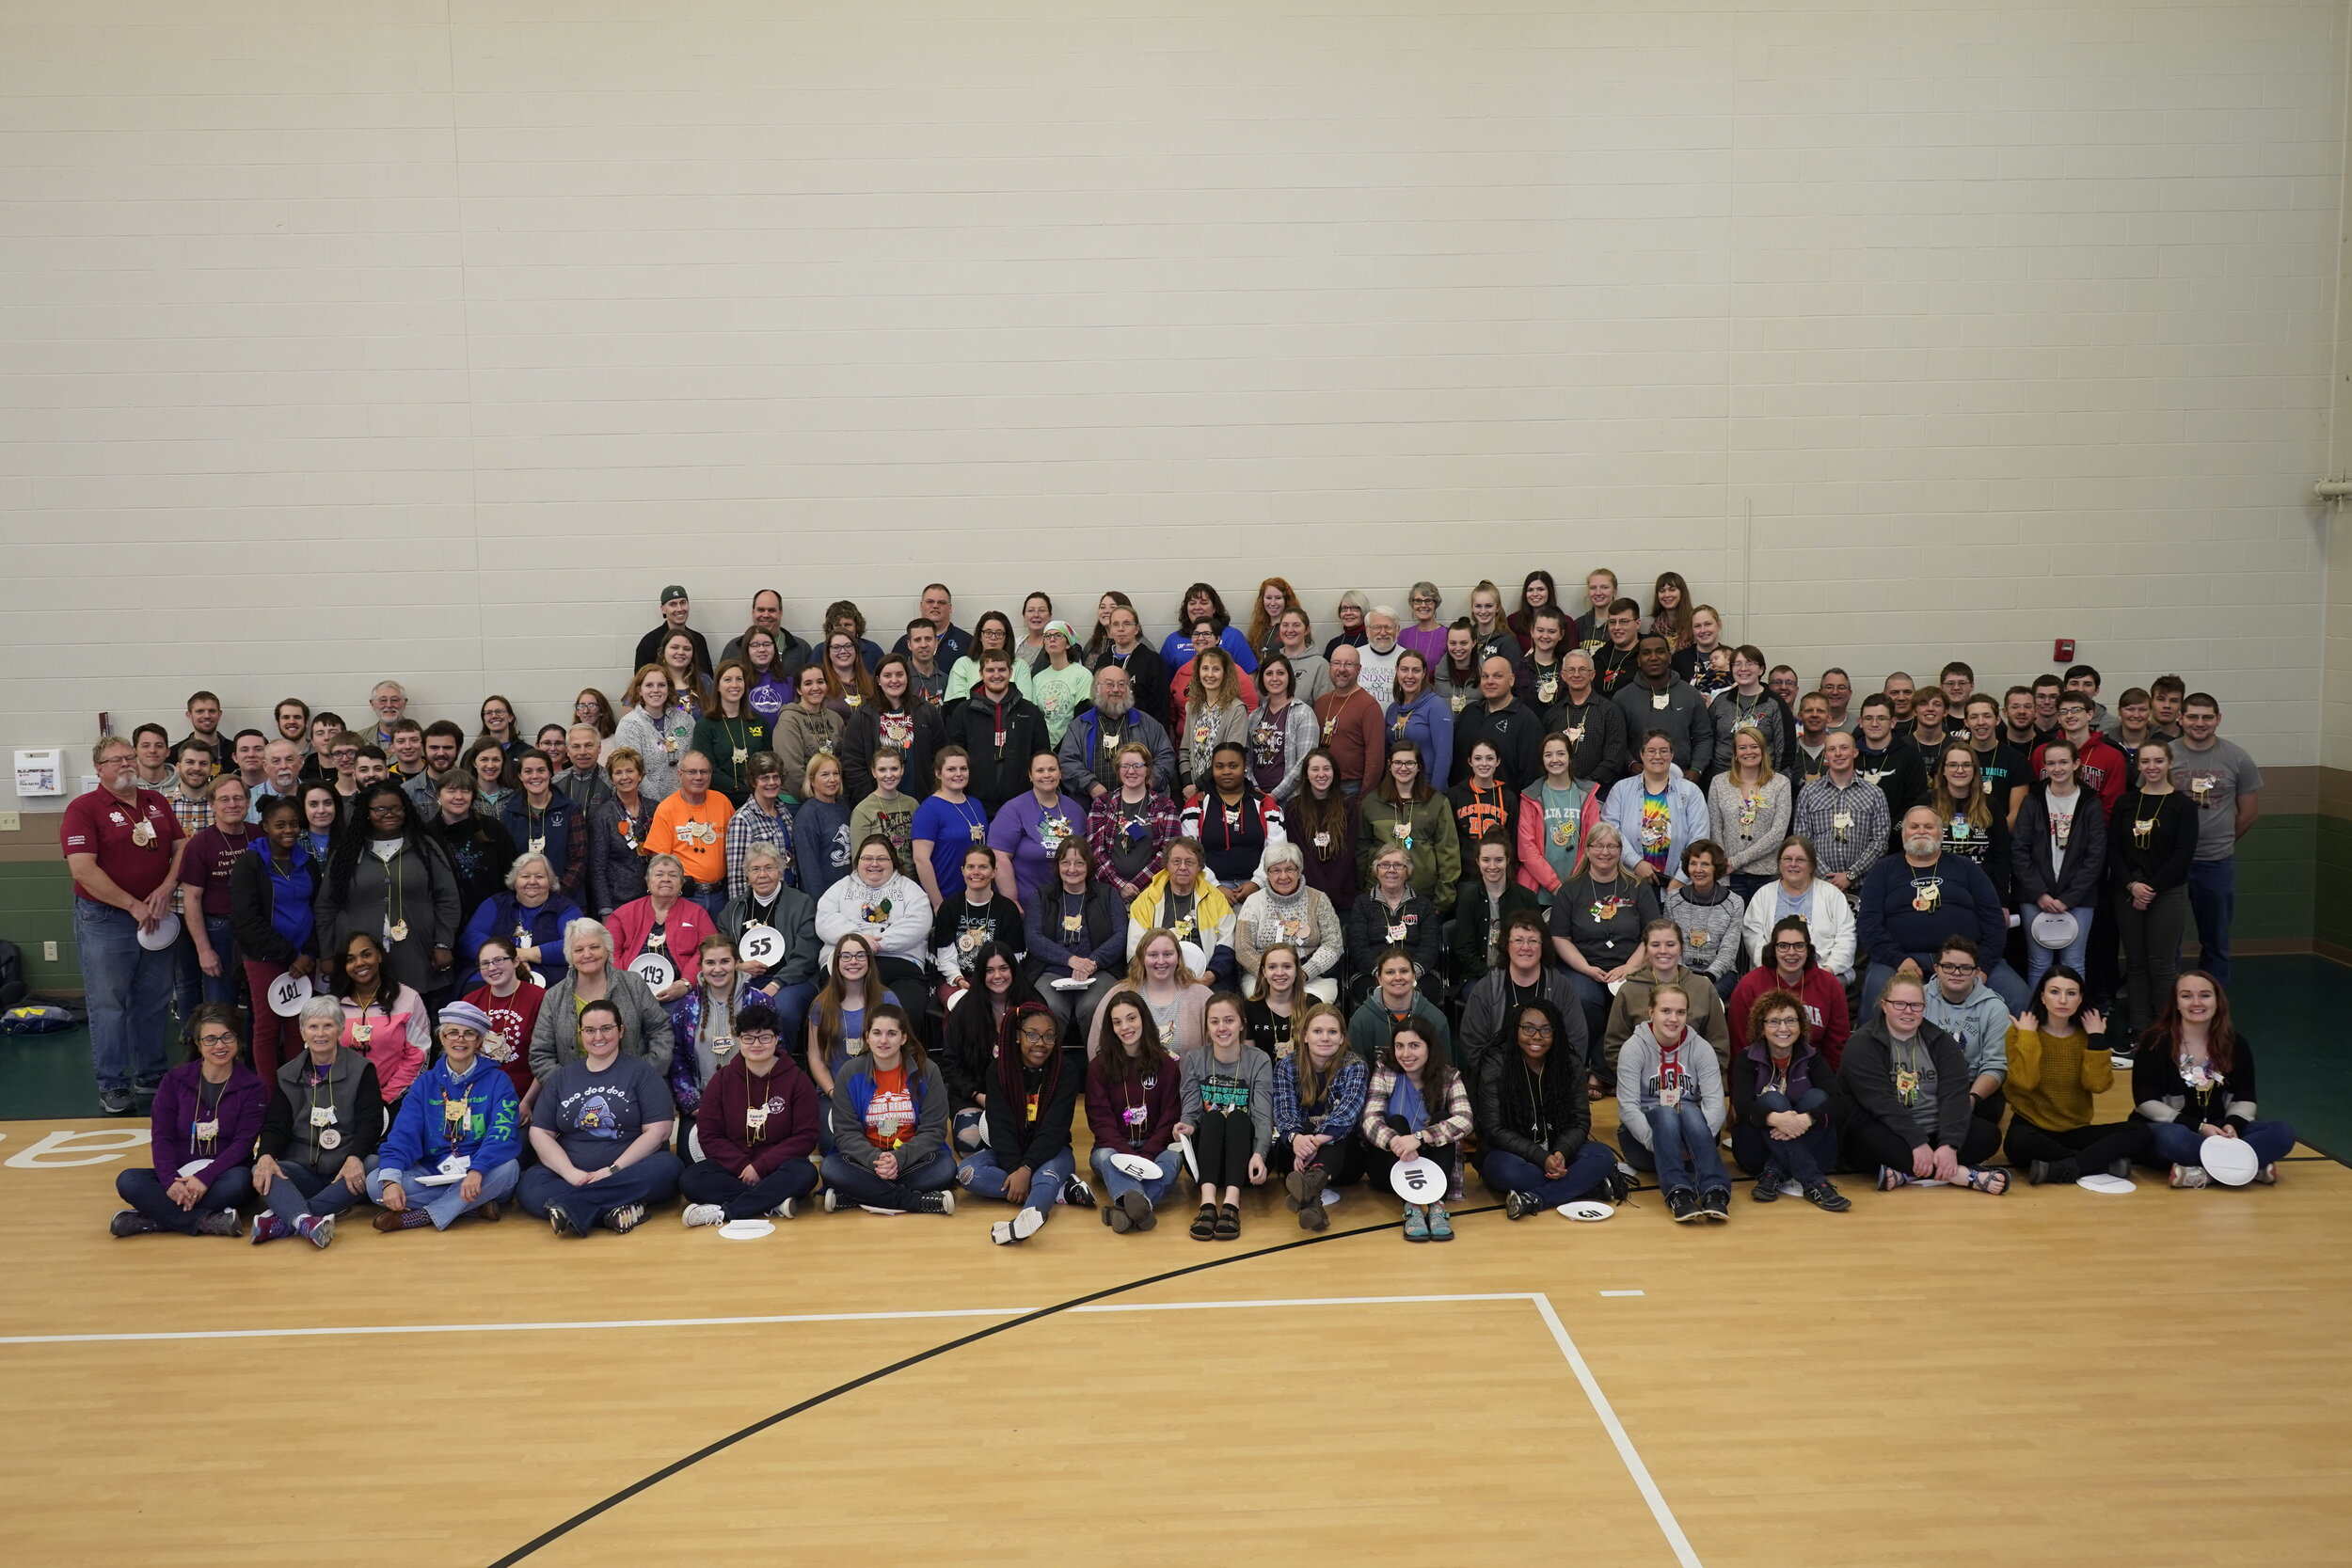 Look at all those smiling faces :) (Click on image to enlarge)